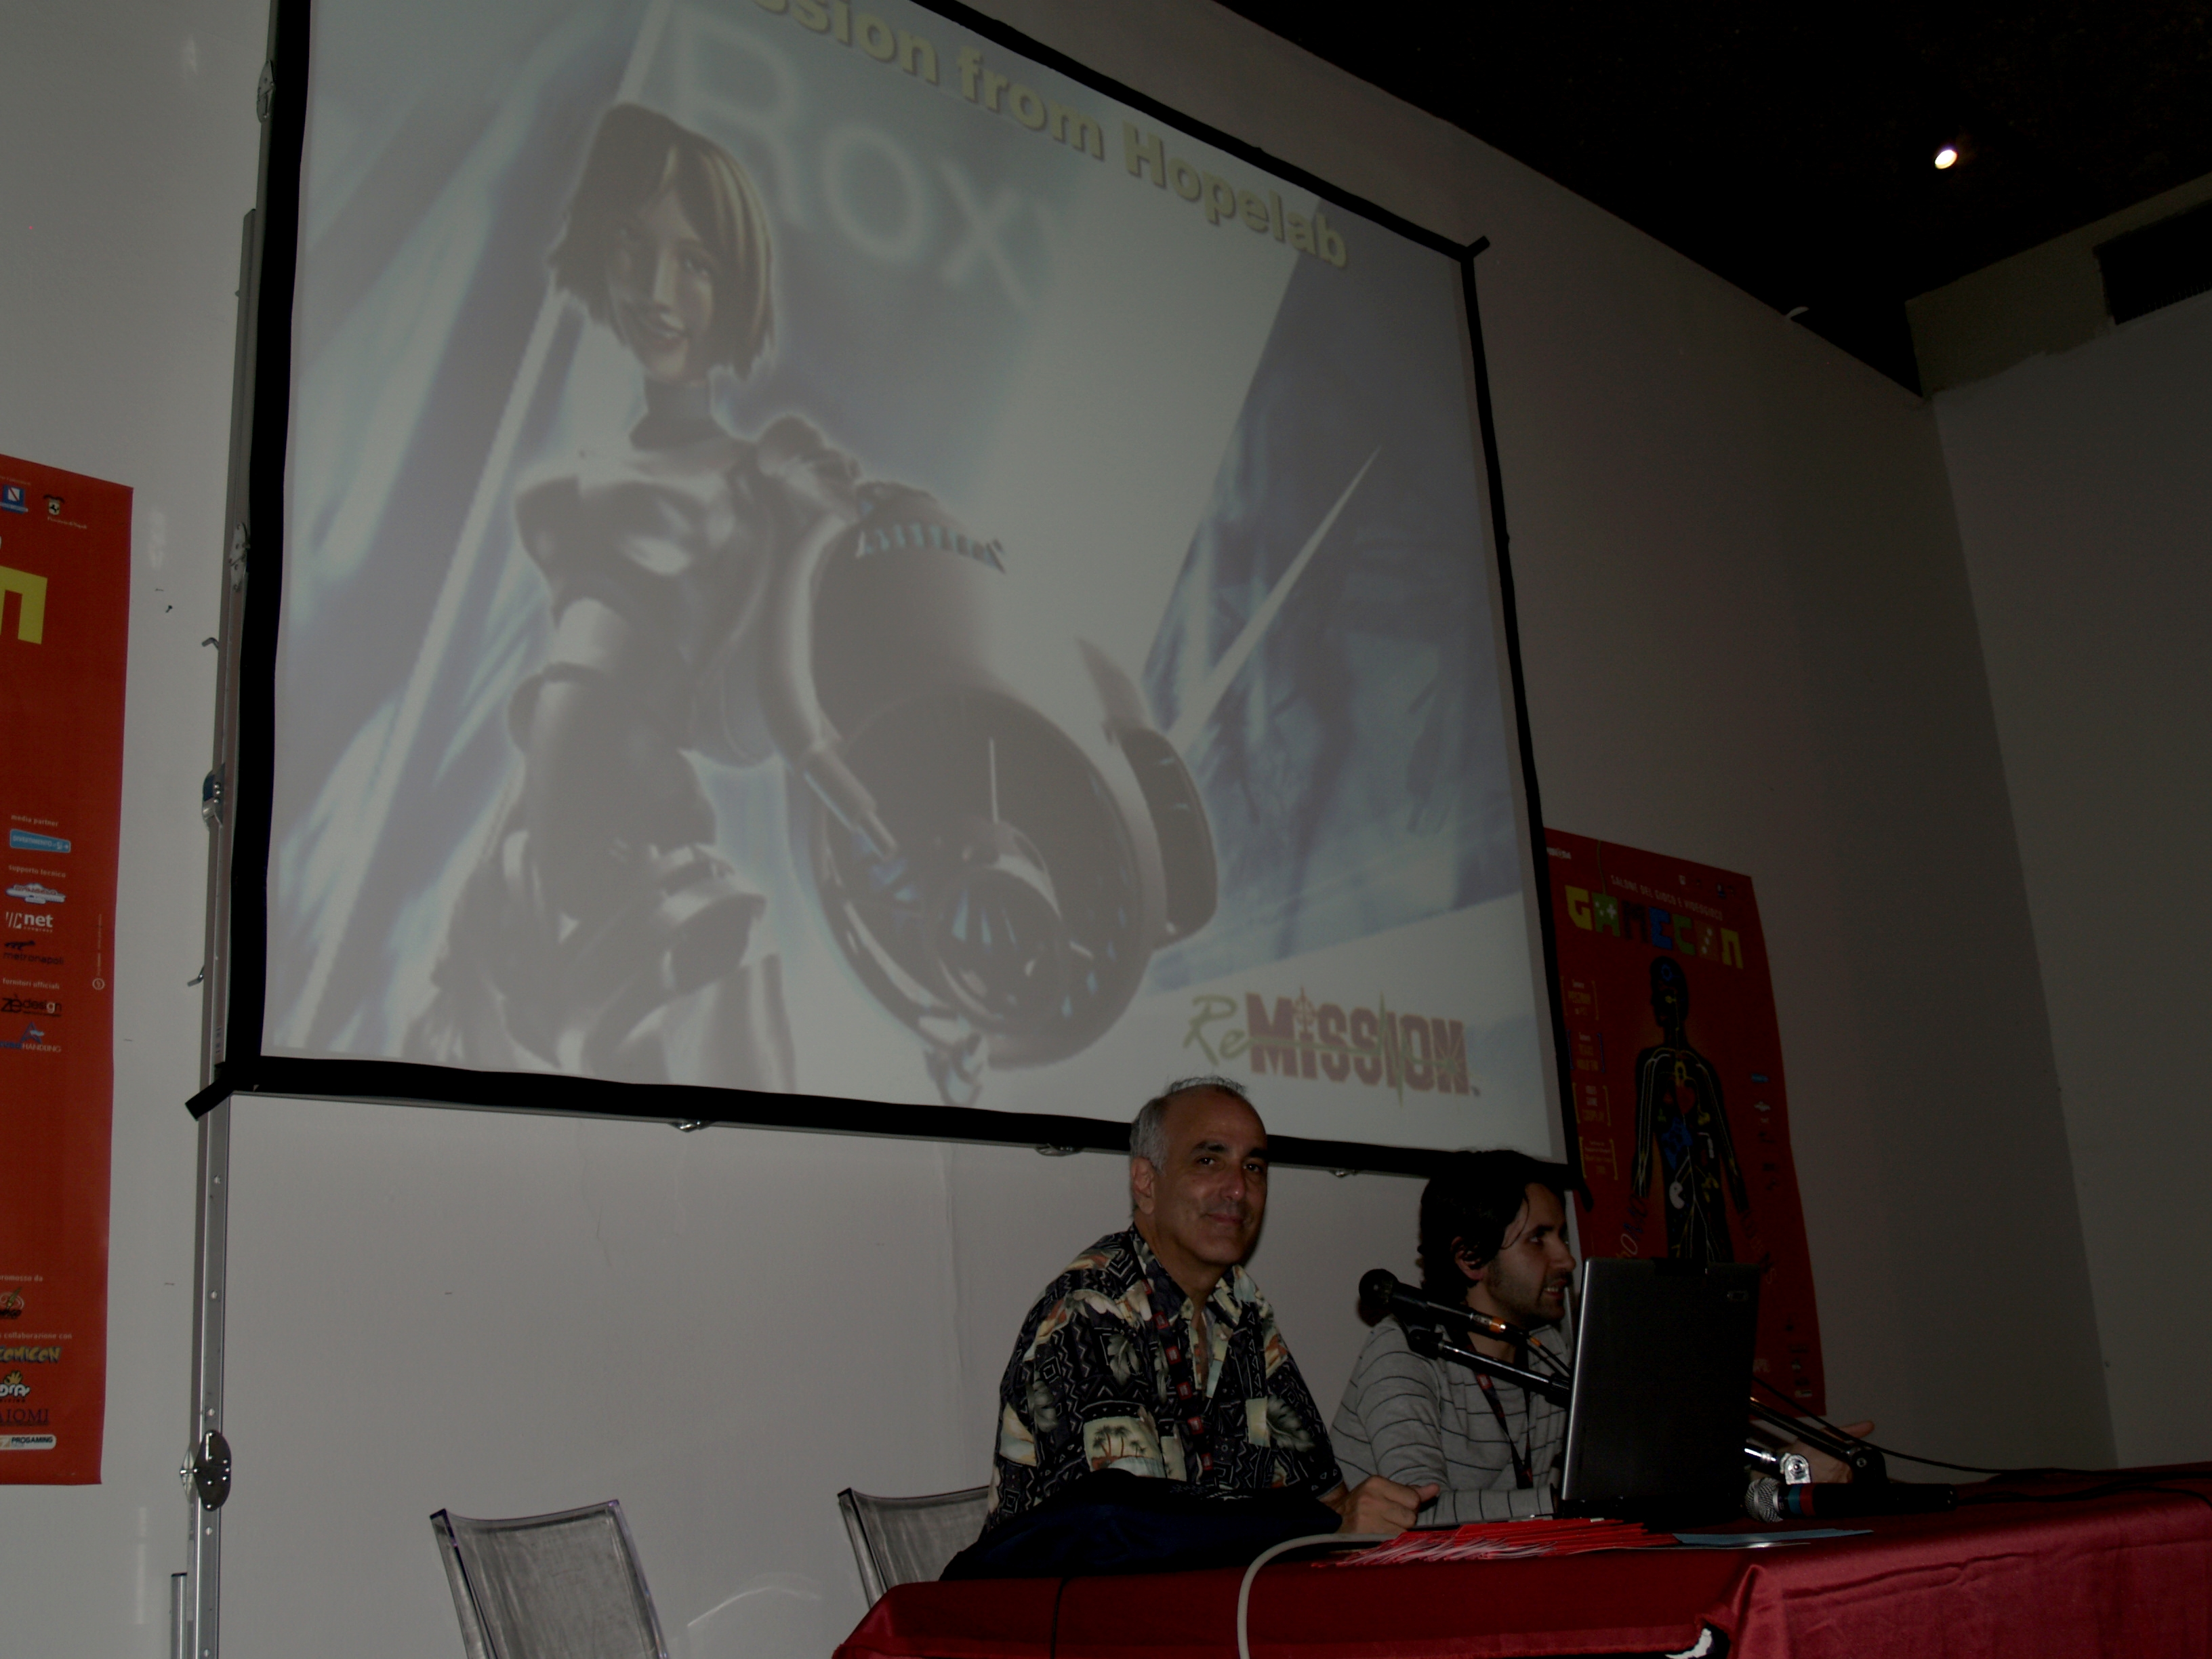 Conferenza Gamecon 2009, con Noah Falstein, autorre di Indiana Jones and the Last Crusade, il mitico Adventure della Lucasfilm